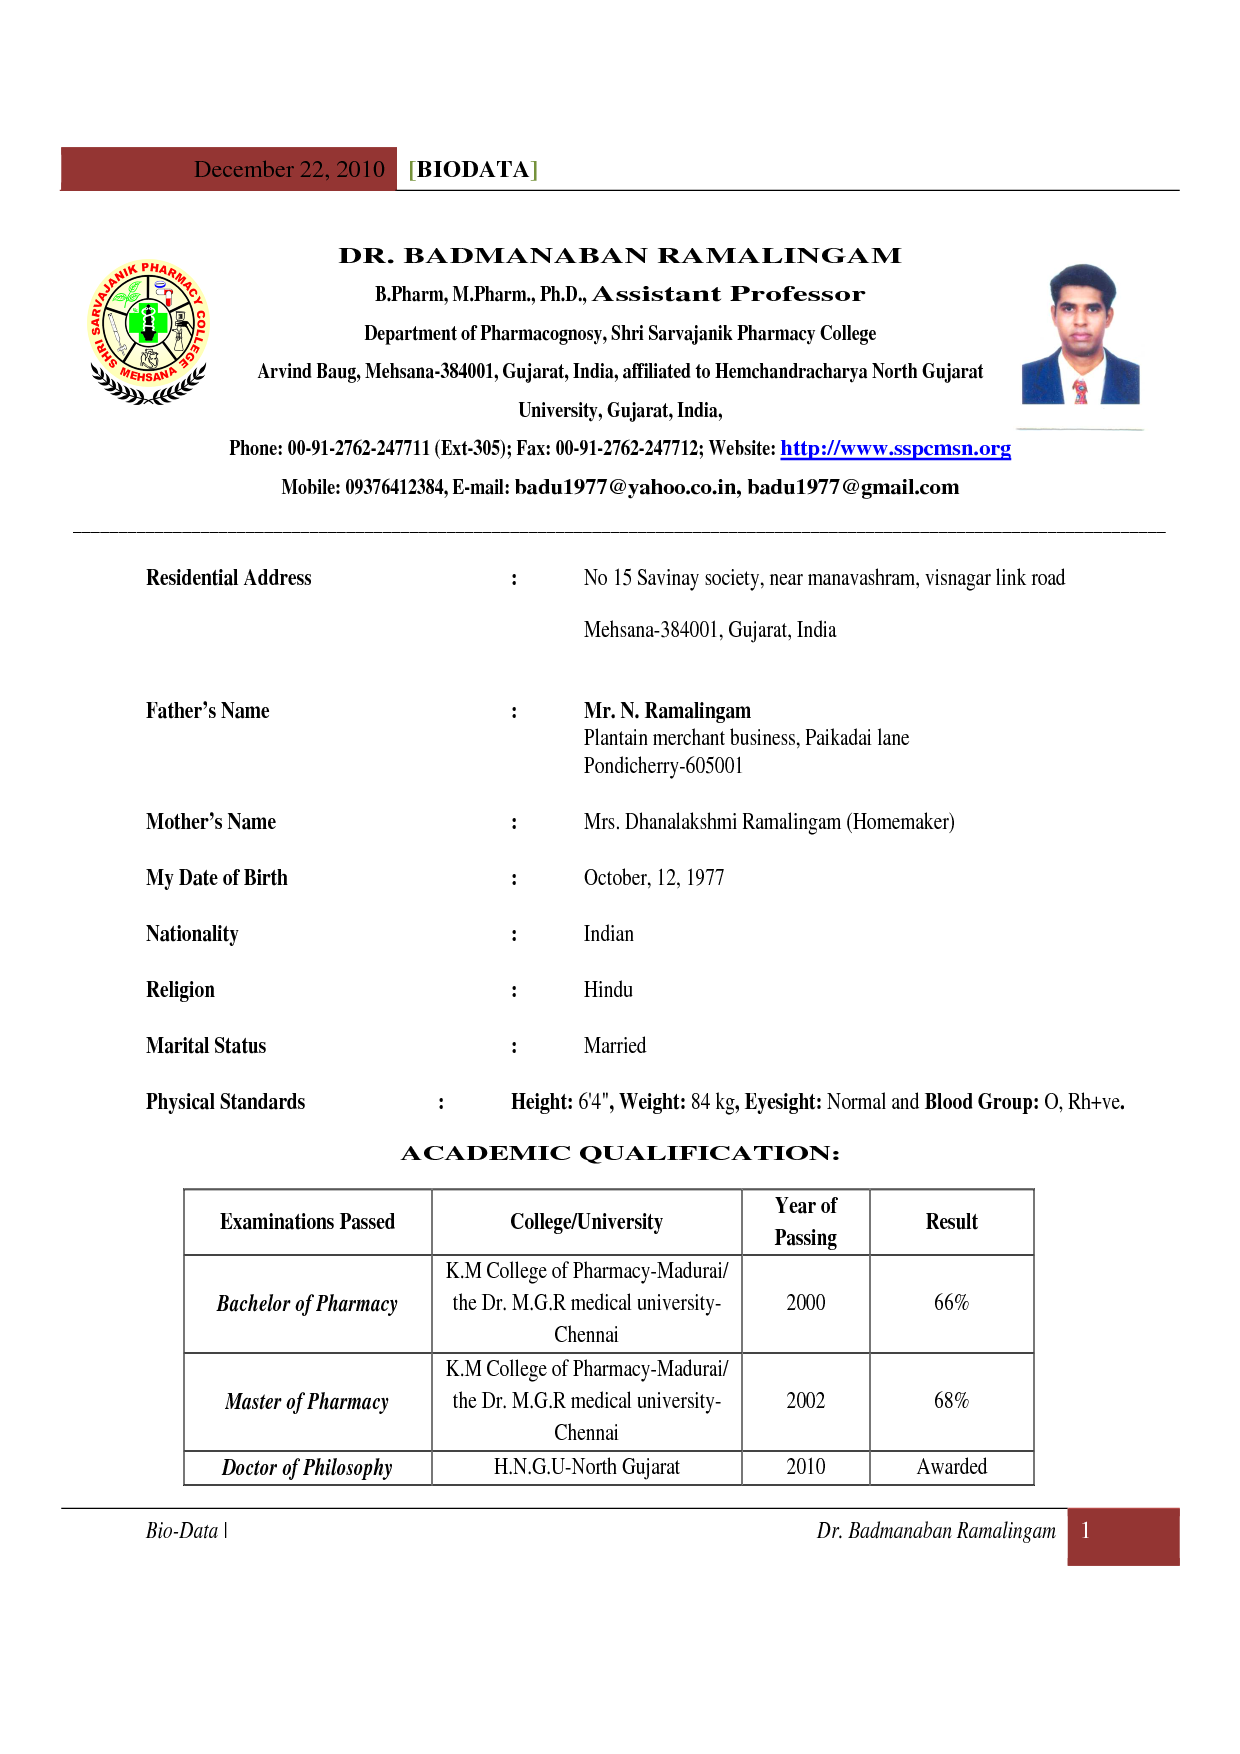 Gujarat Teacher resume template, Resume format for